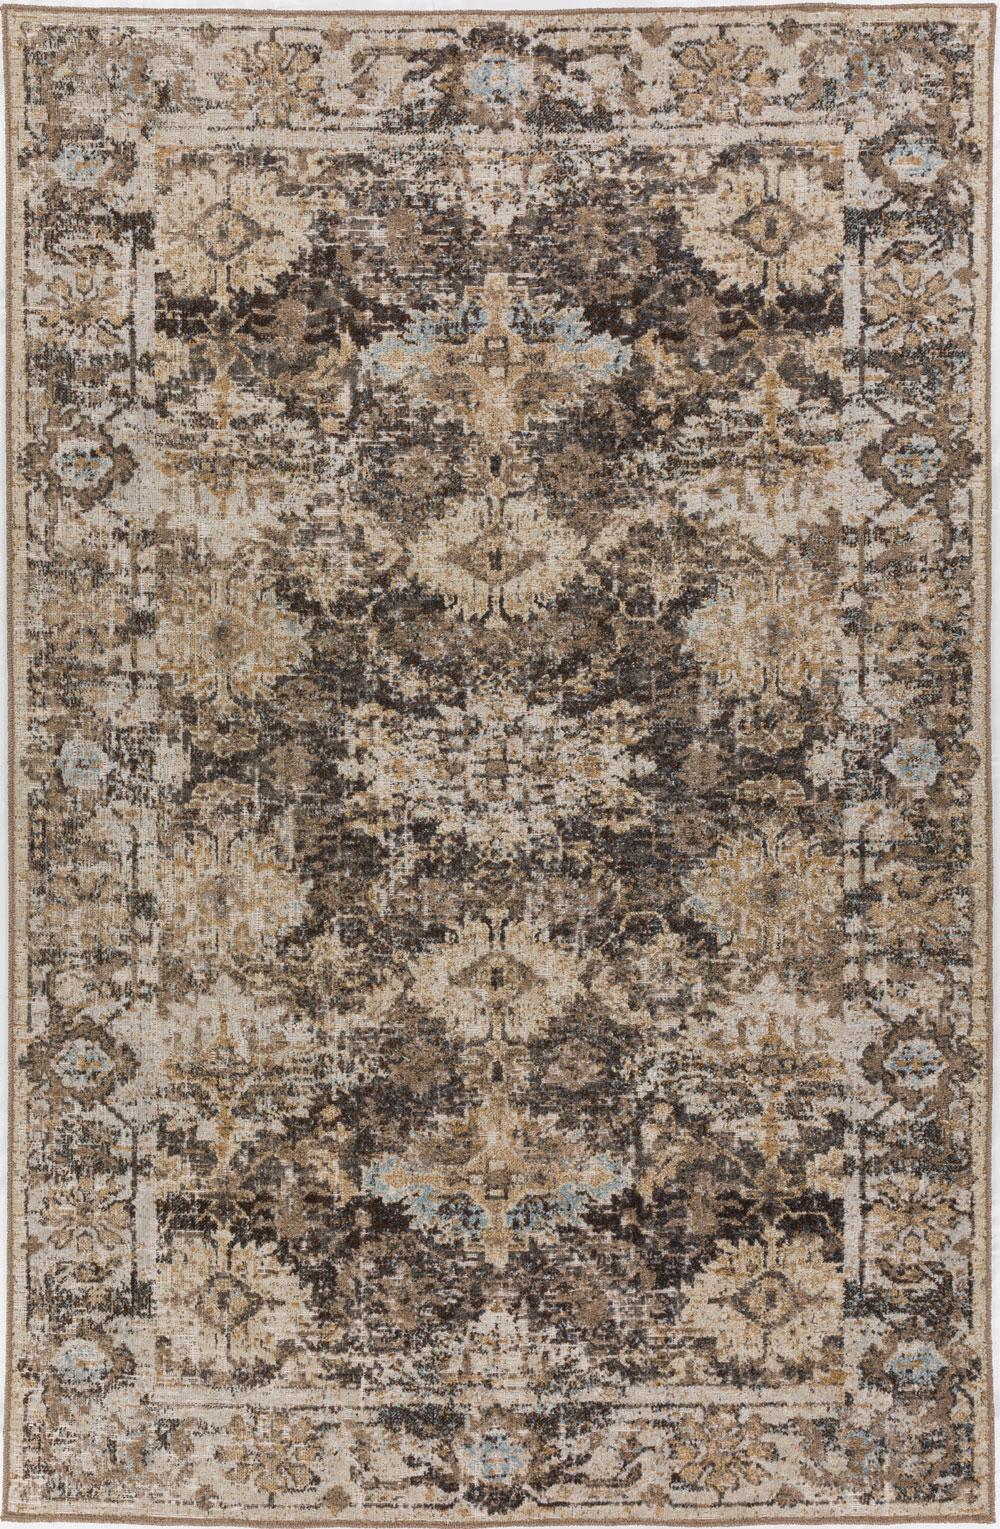 Dalyn Mercier MR6 Mocha Rug